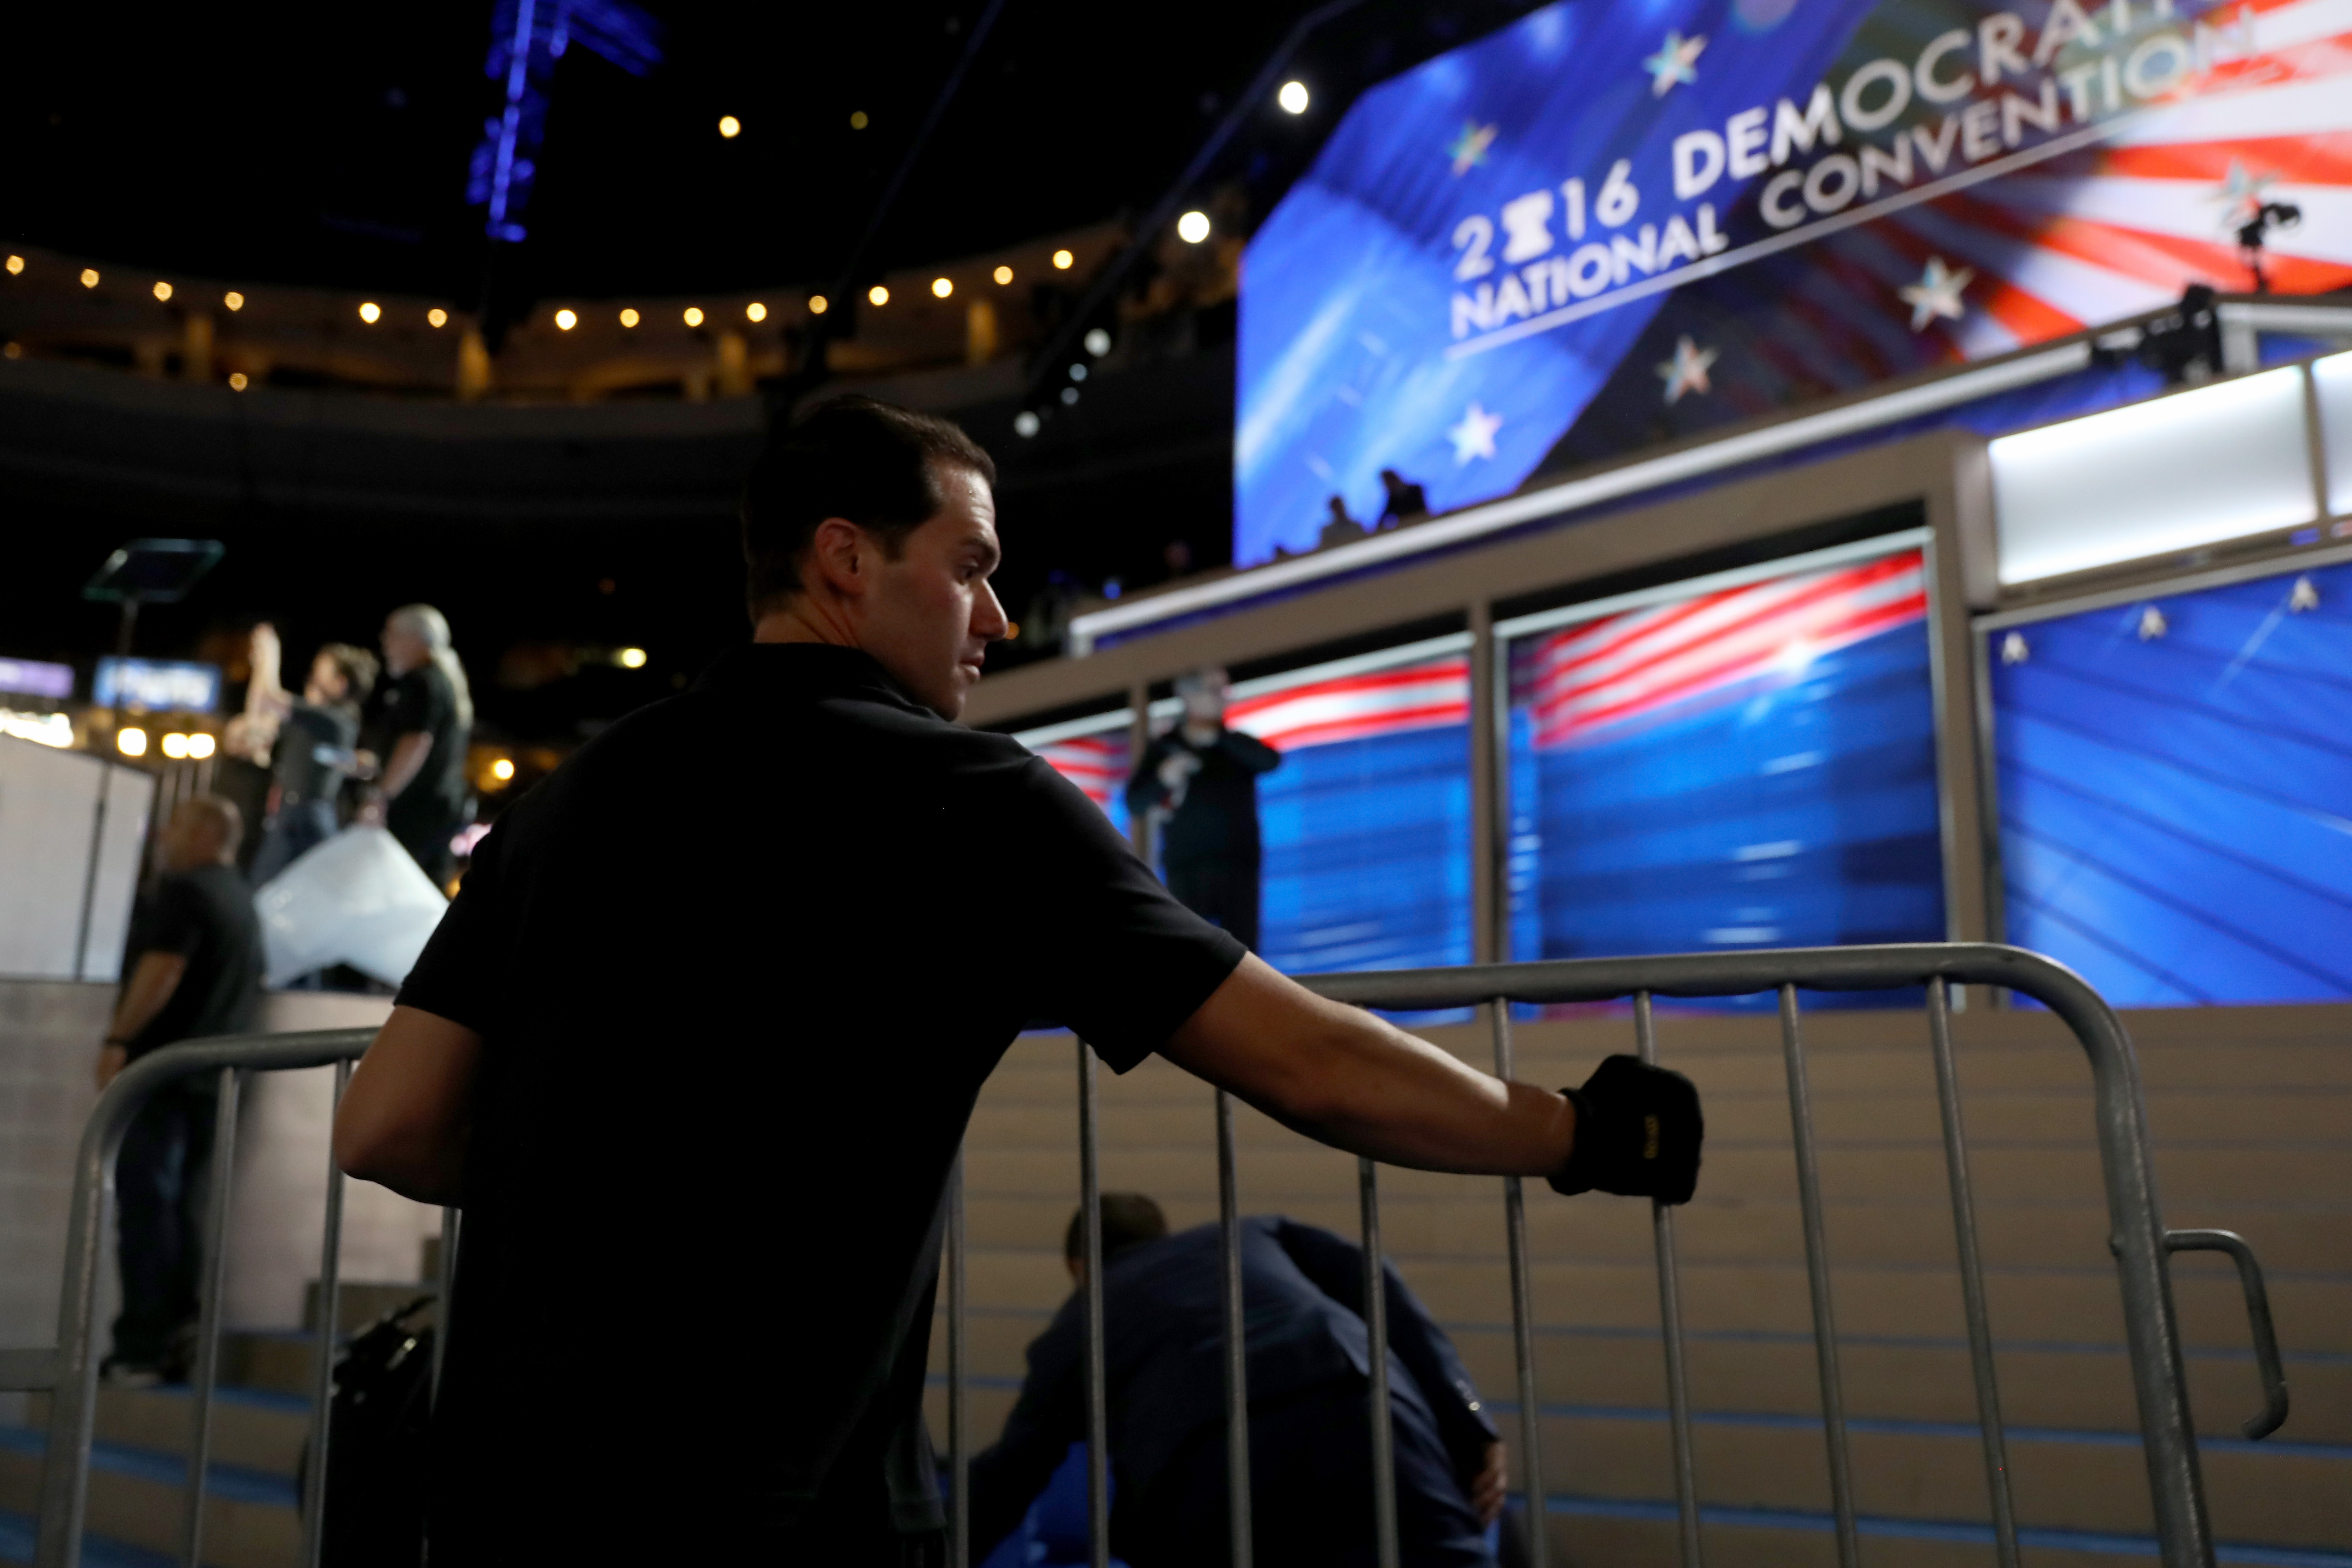 Workers prepare the stage at the Democratic National Convention at the Wells Fargo Center. (Getty Images)